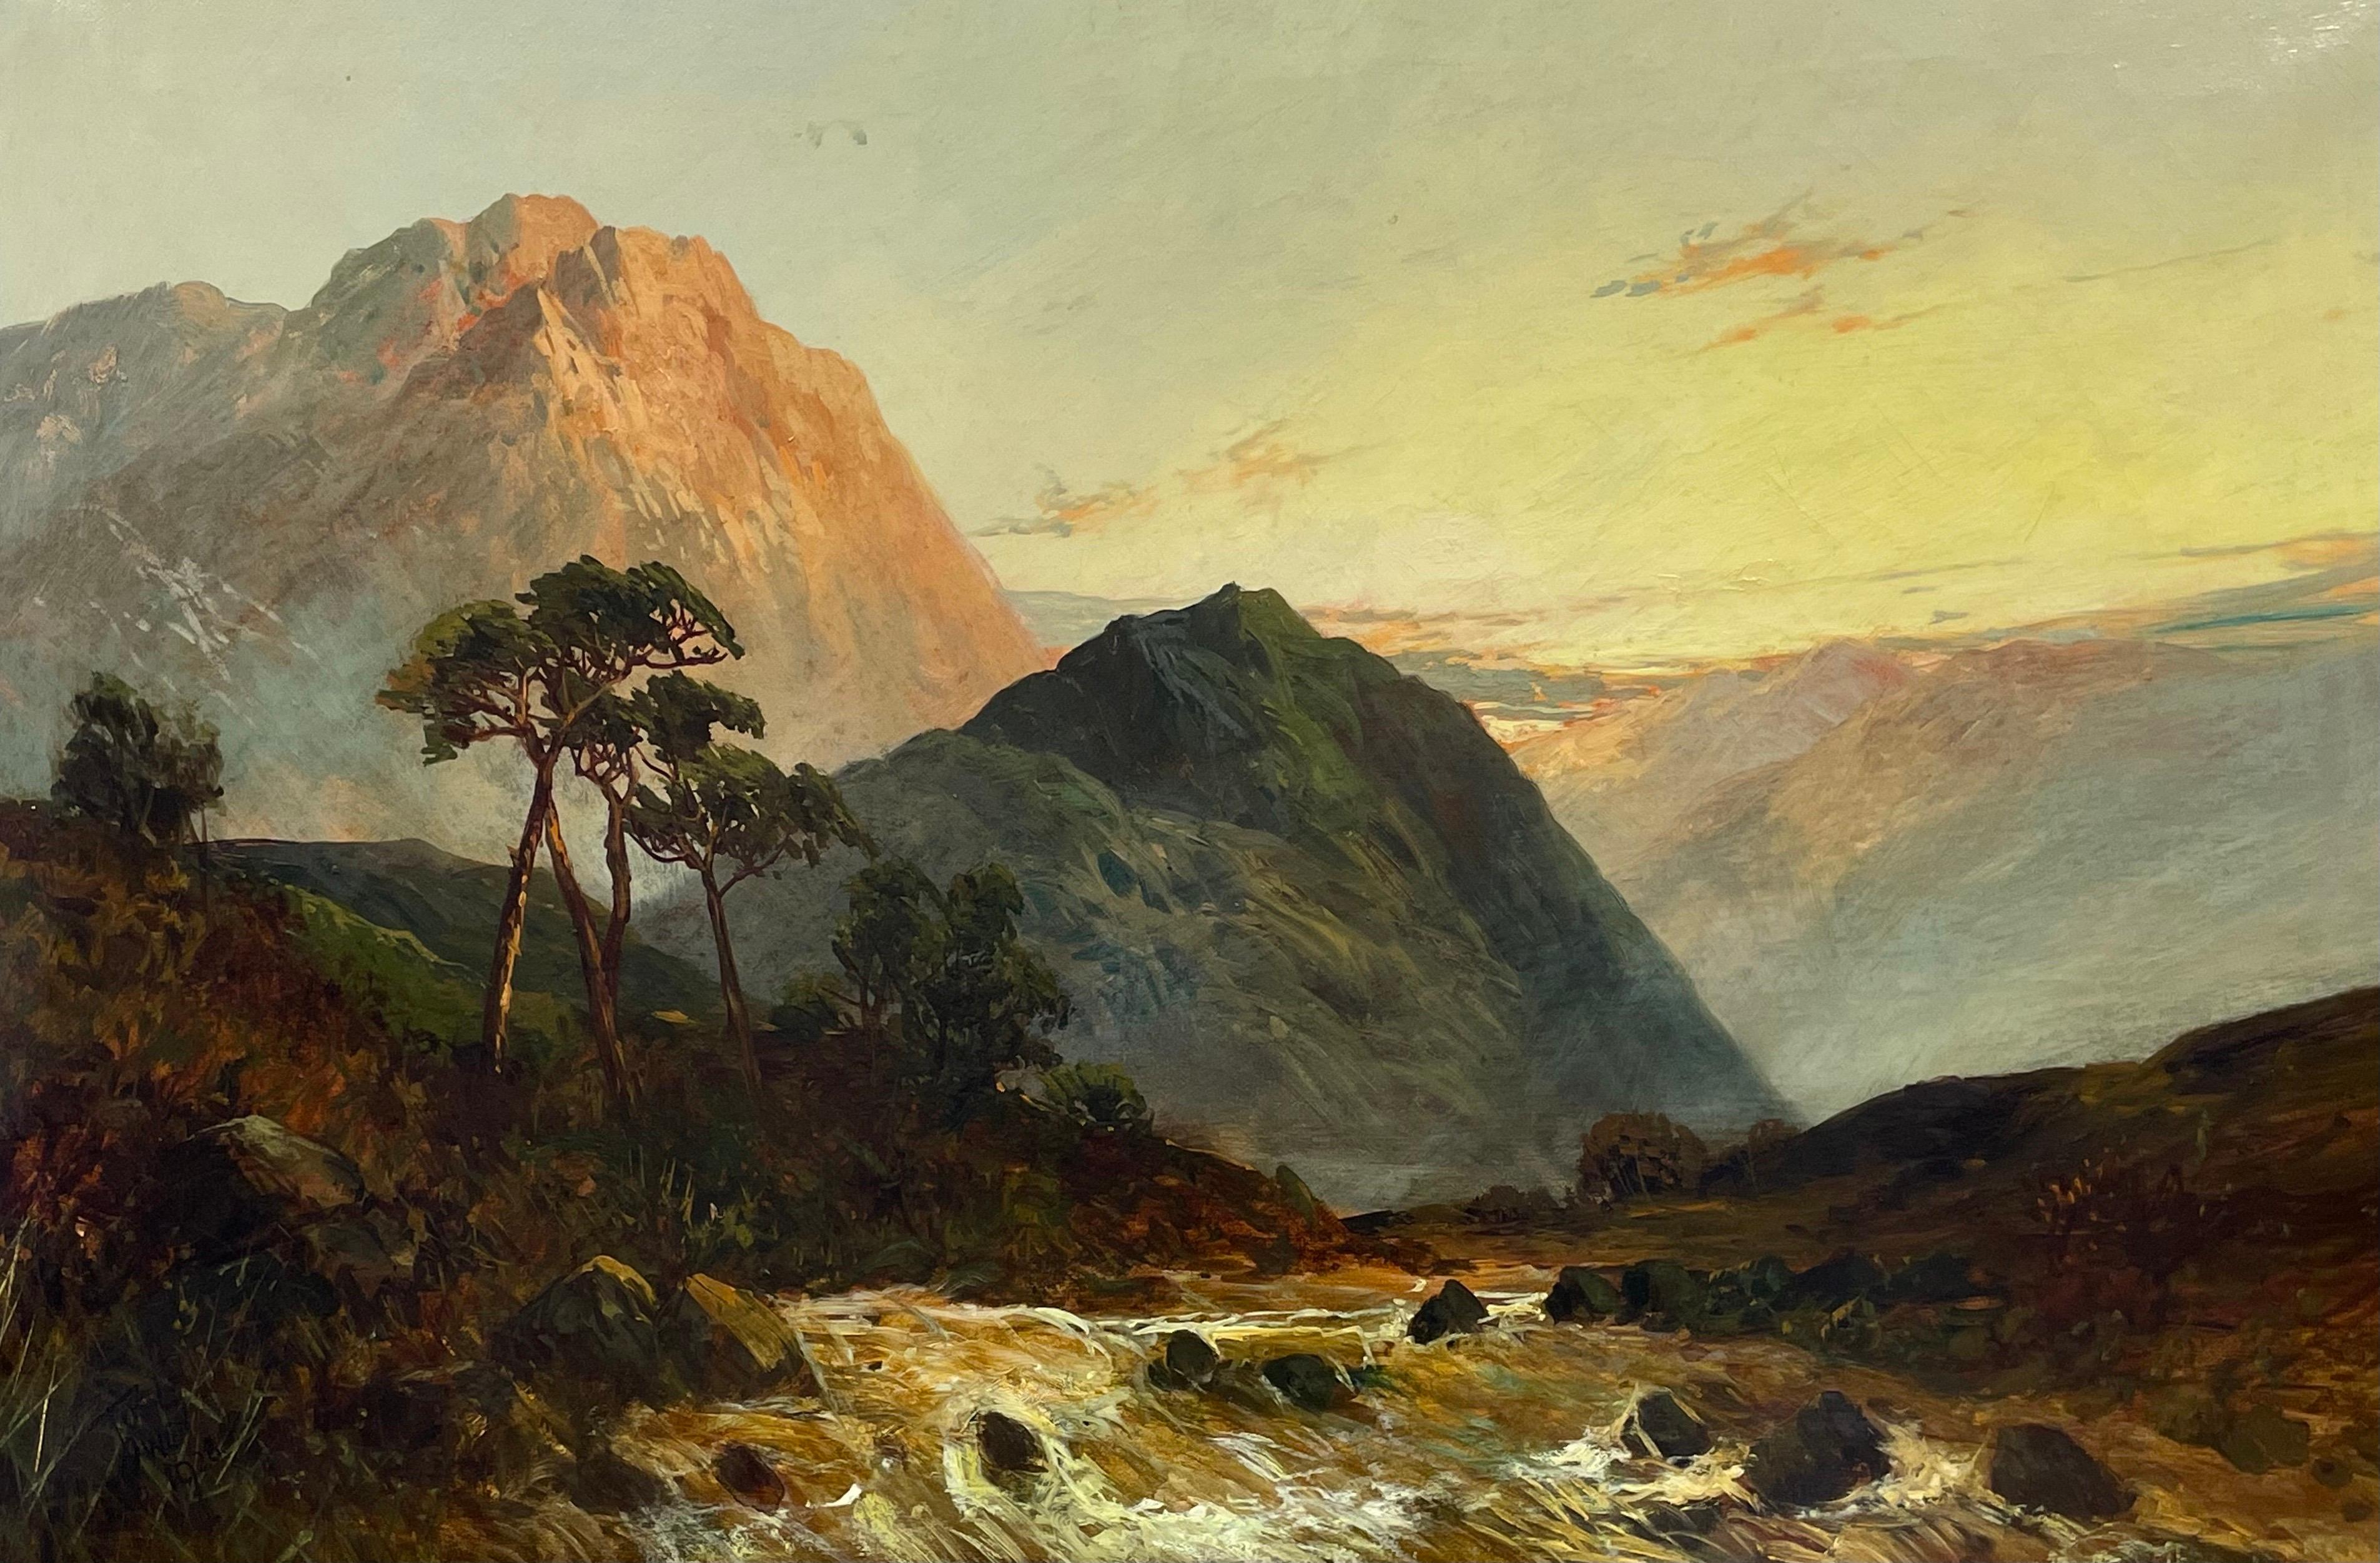 Antique Scottish Highlands Oil Painting Sunset River Landscape with Mountains